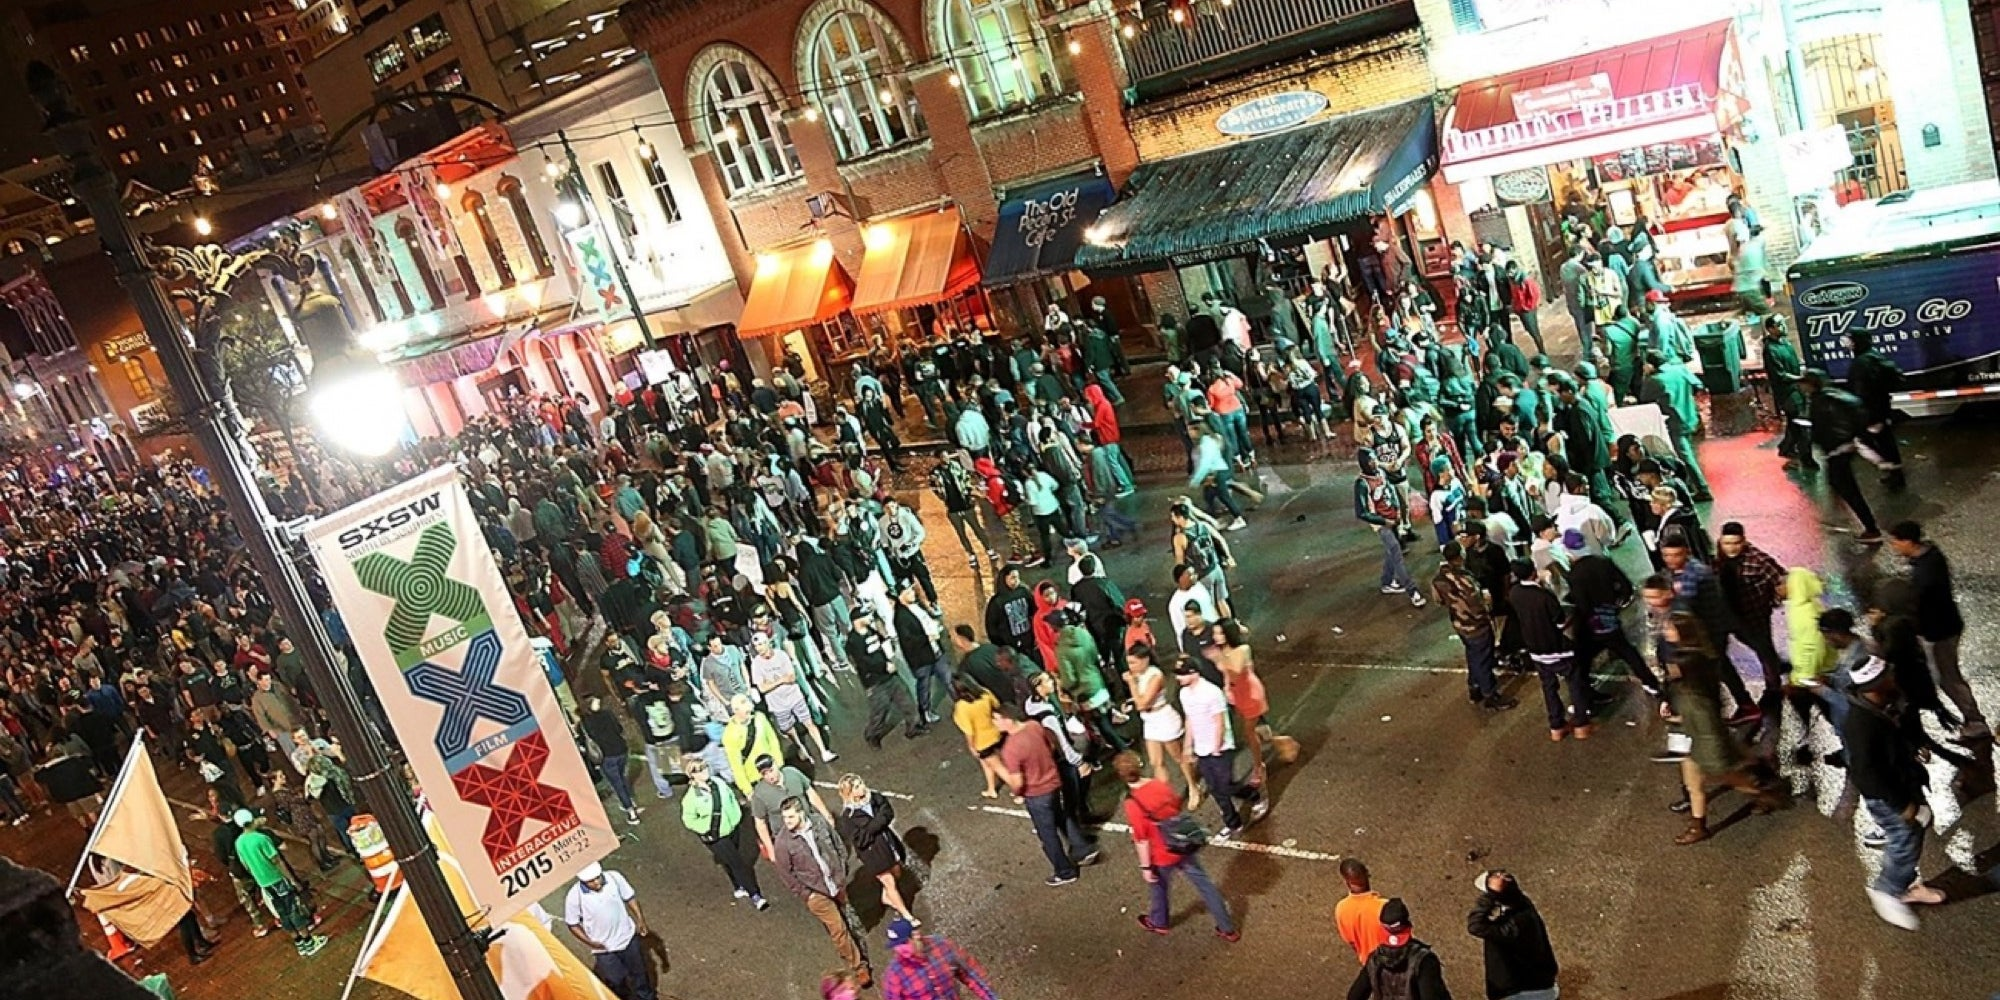 SXSW Lessons From the Founders of Facebook, Twitter, Foursquare and More